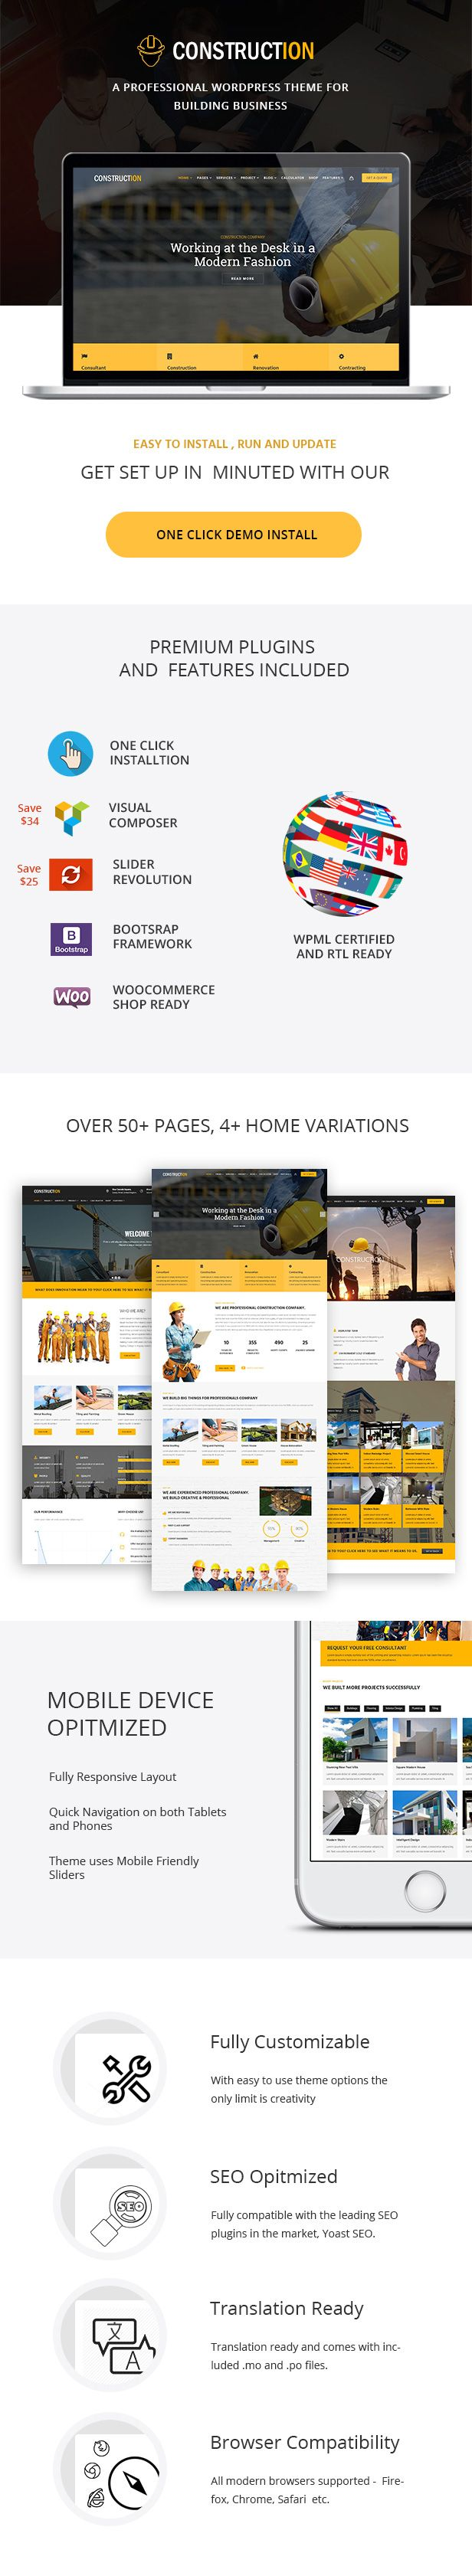 Construction - A Professional WordPress Theme for Construction & Building Business by catchpixel